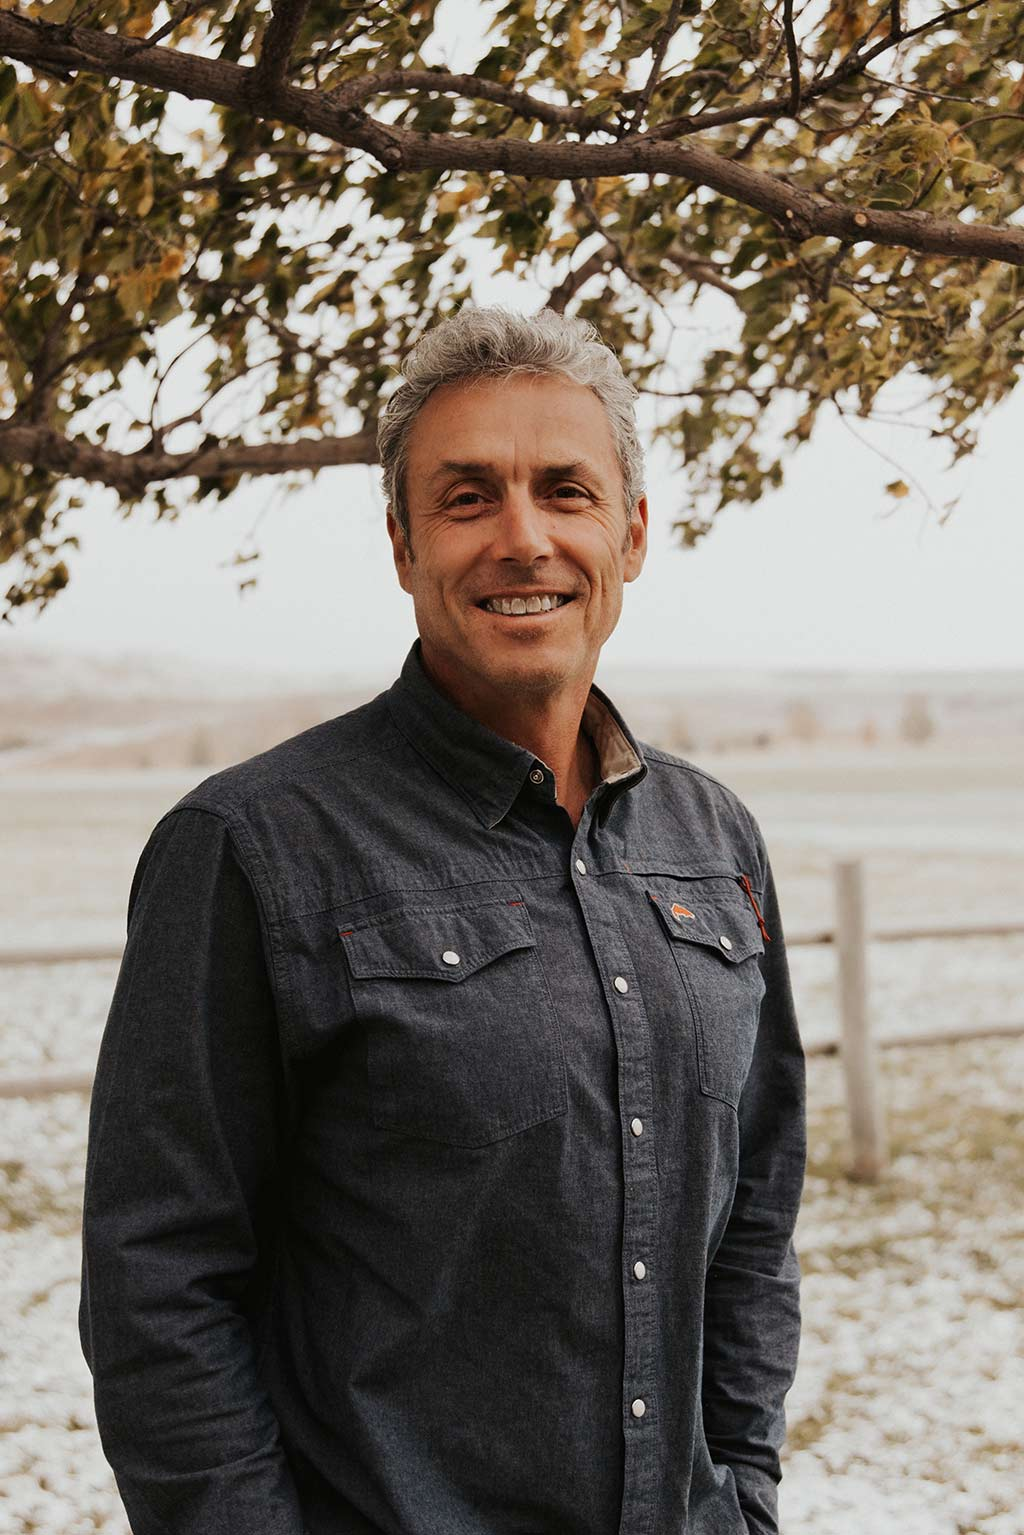 Chris Beato, CEO and Co-founder of Rocking WW Minerals